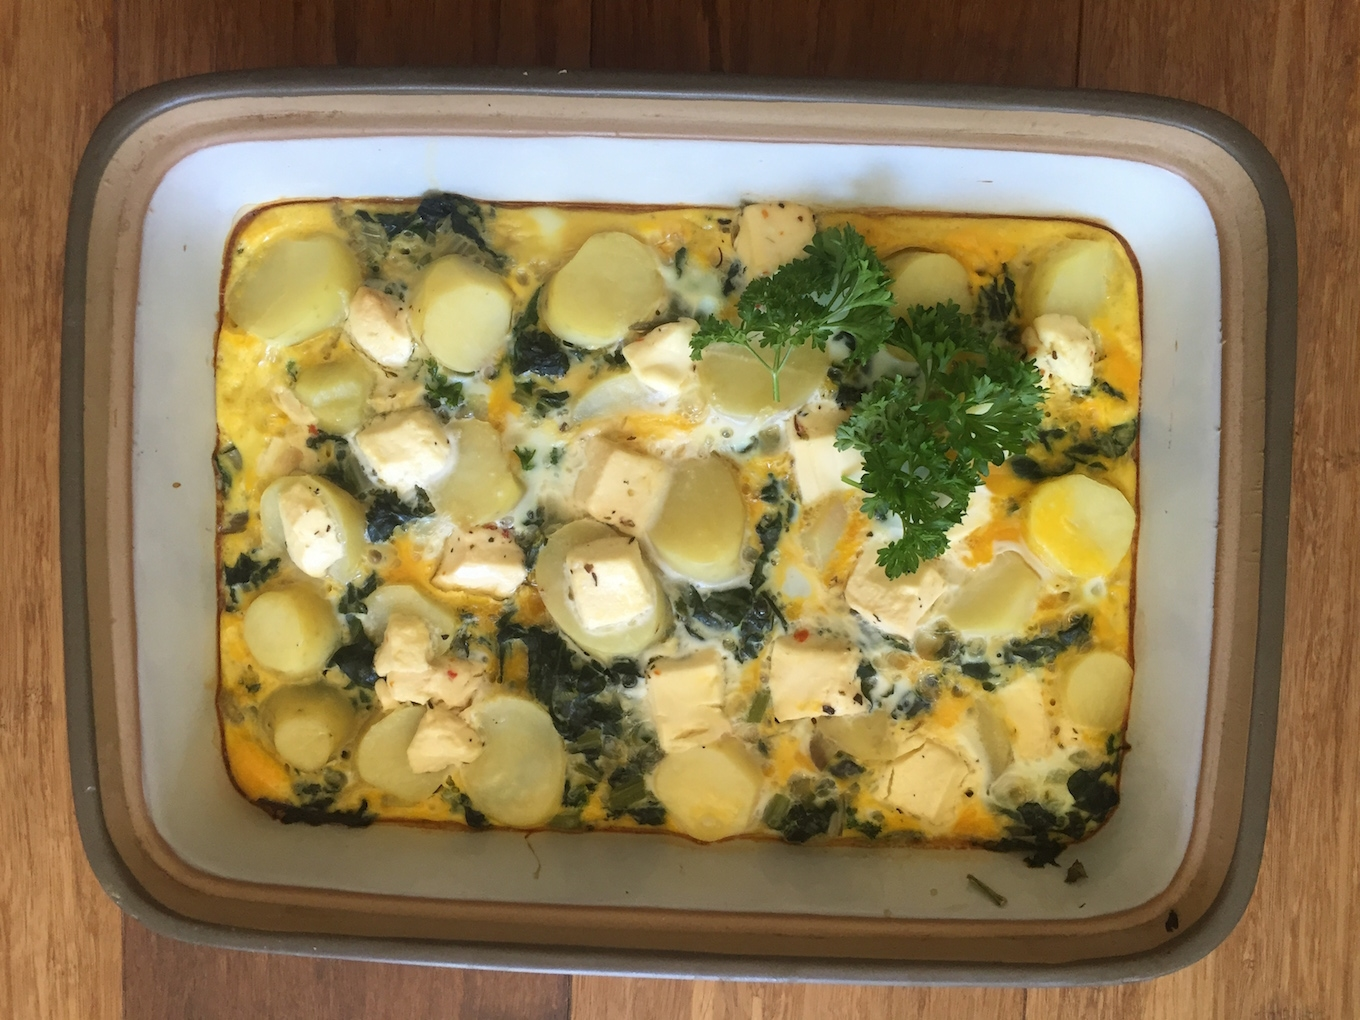 Cooked frittata, packed with veggies and perfect for any meal of the day!